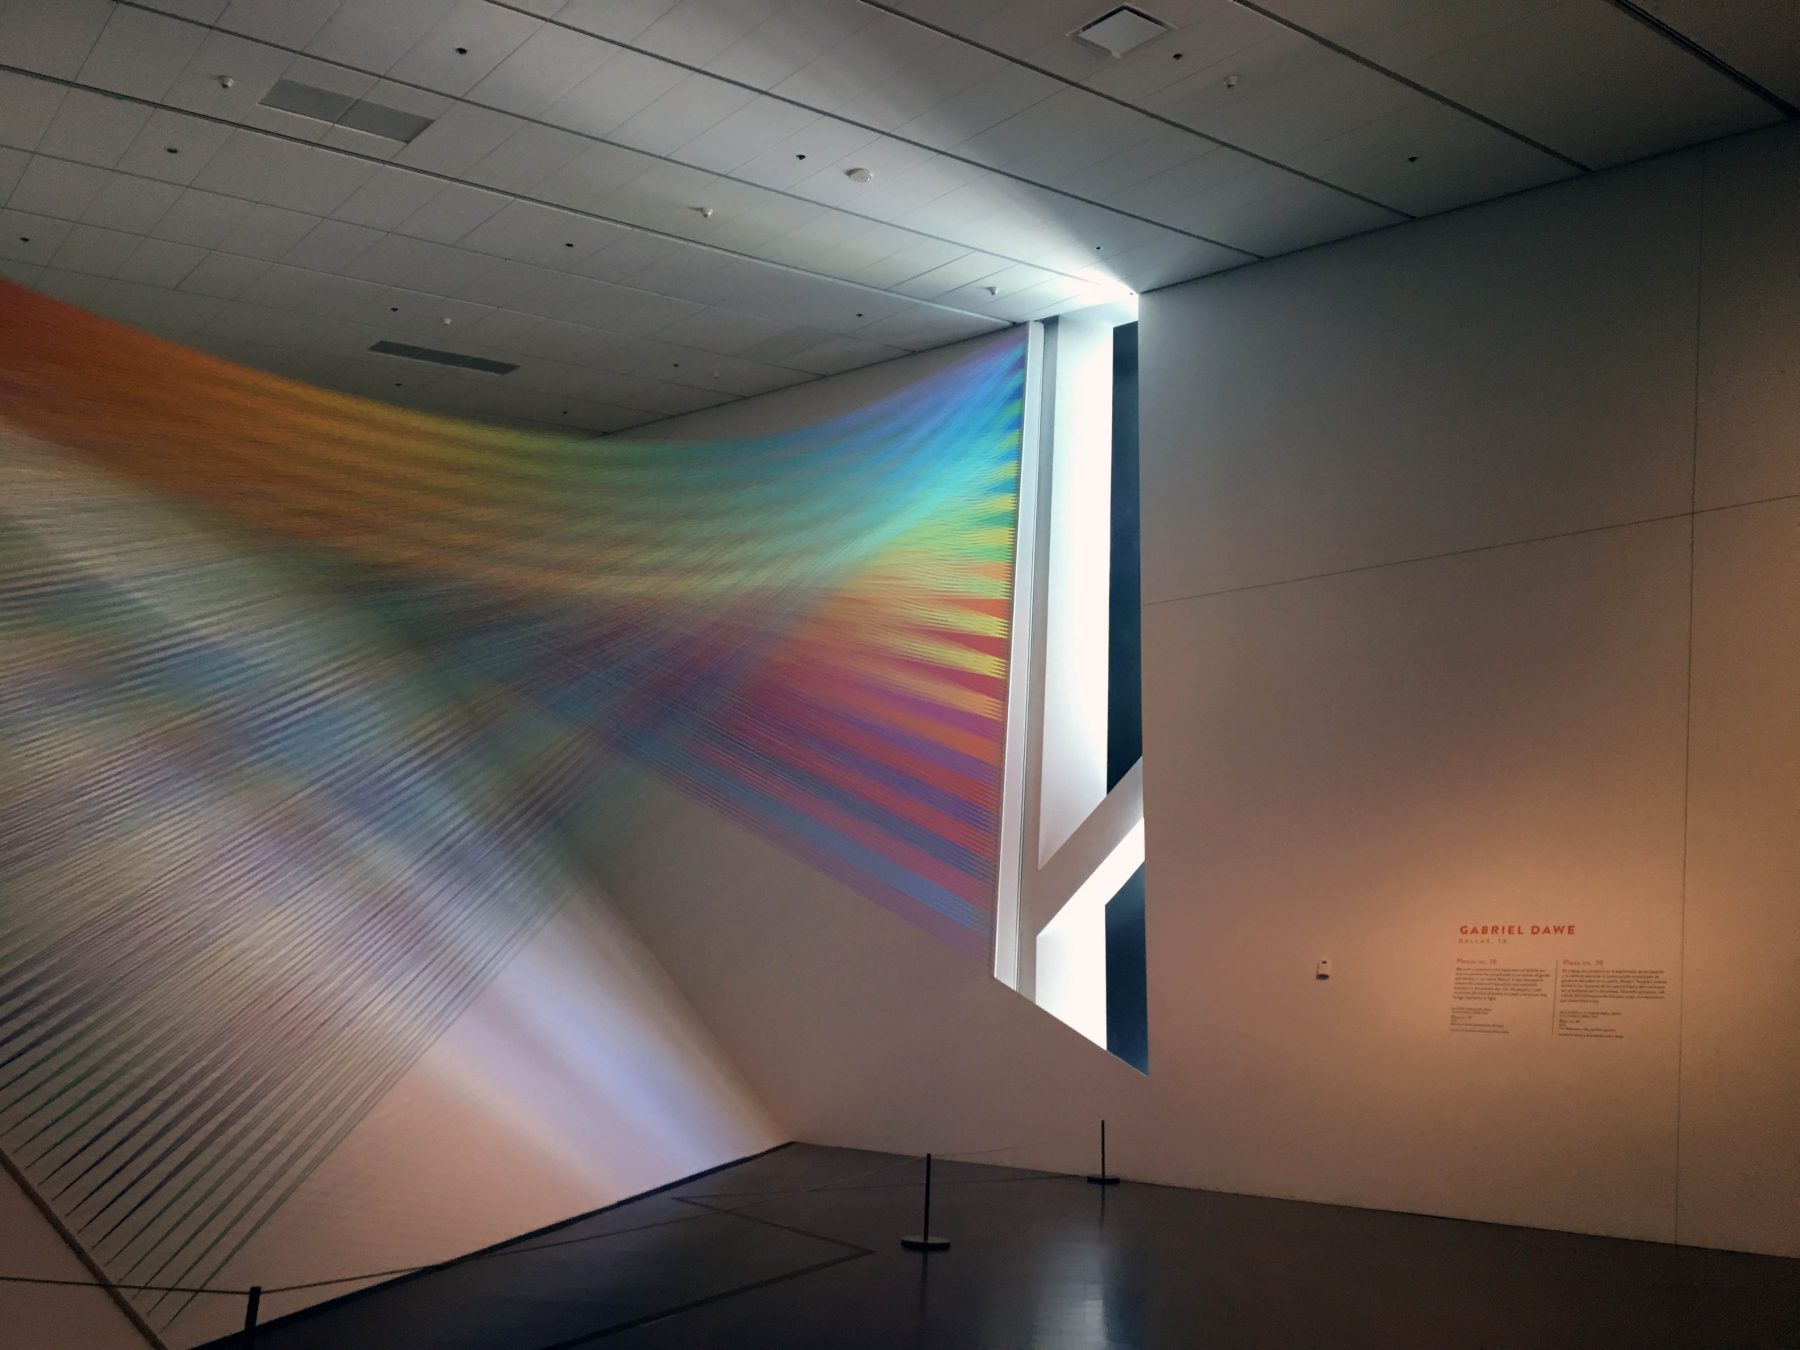 Plexus 36 by Gabriel Dawe at the Denver Art Museum for Mi Tierra